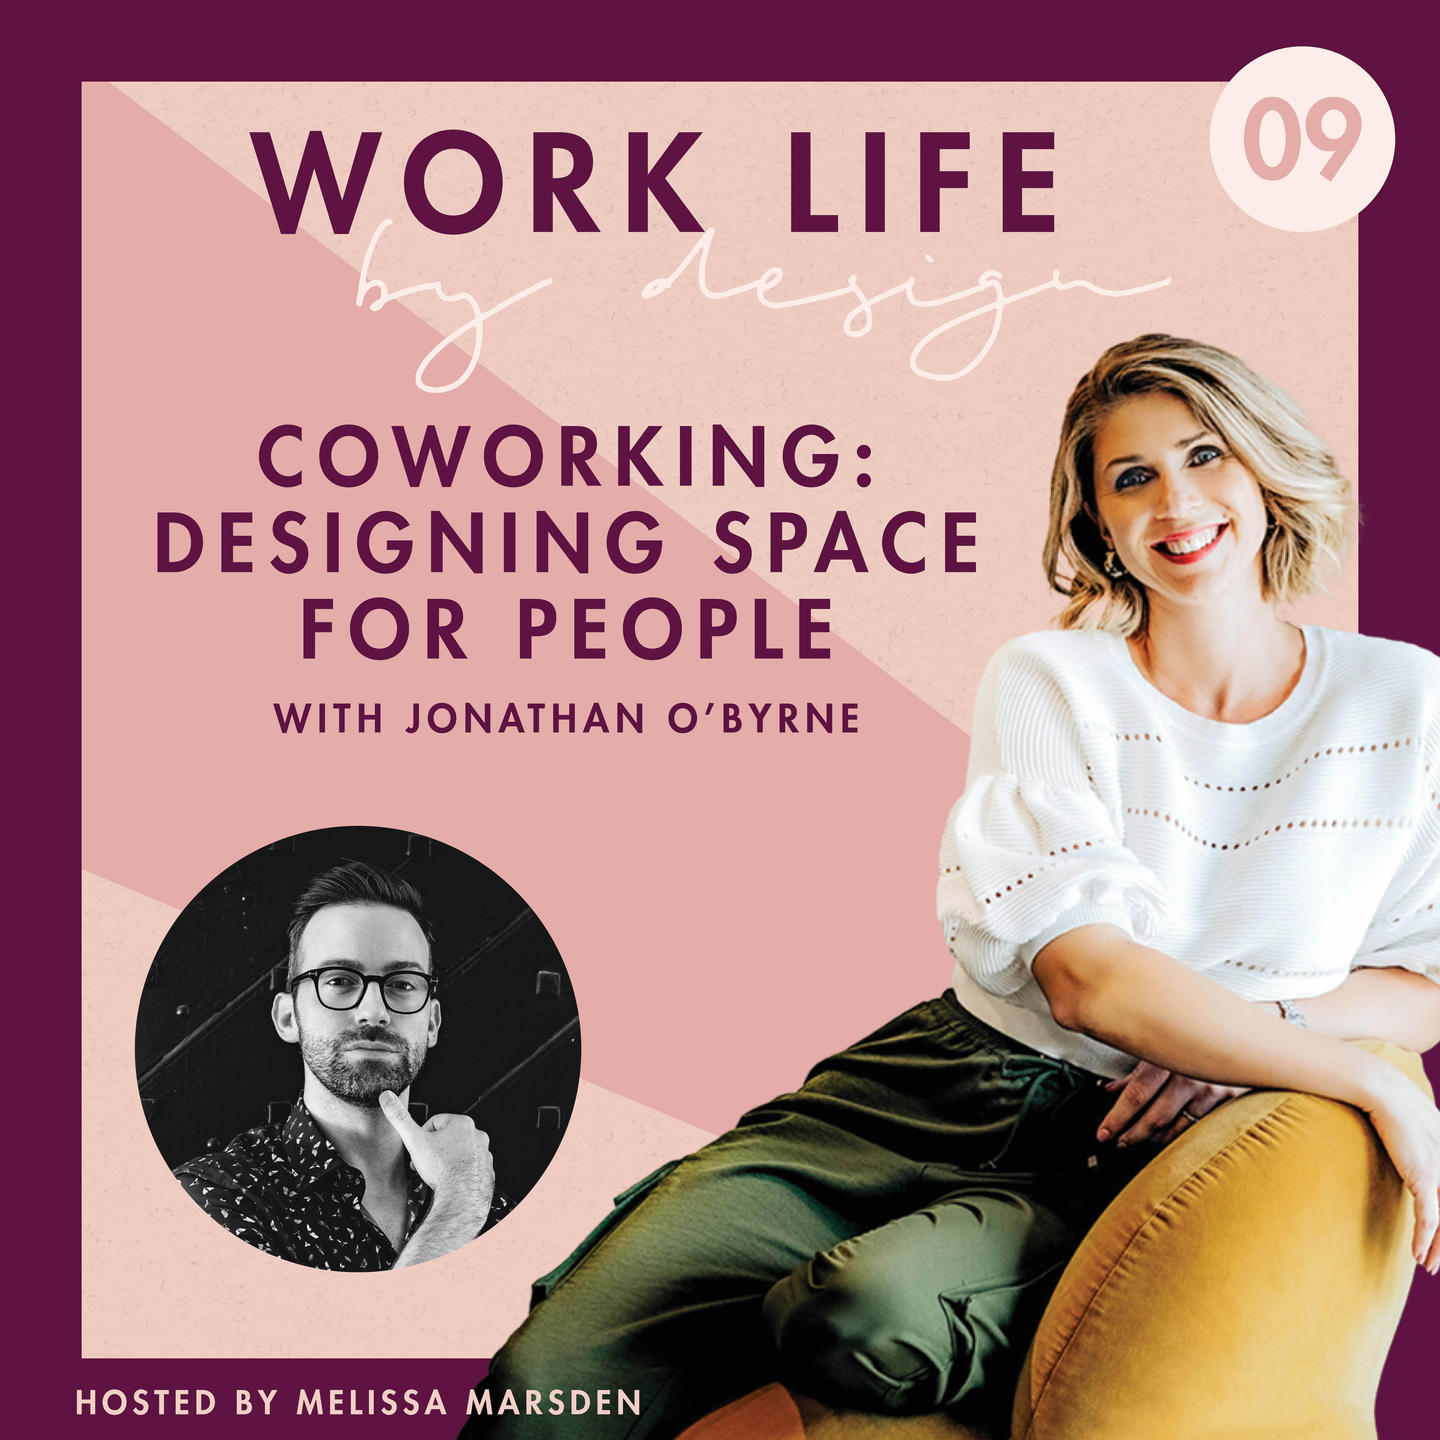 Coworking: Designing Space for People with Jonathan O'Byrne | Work Life By Design Podcast Melissa Marsden